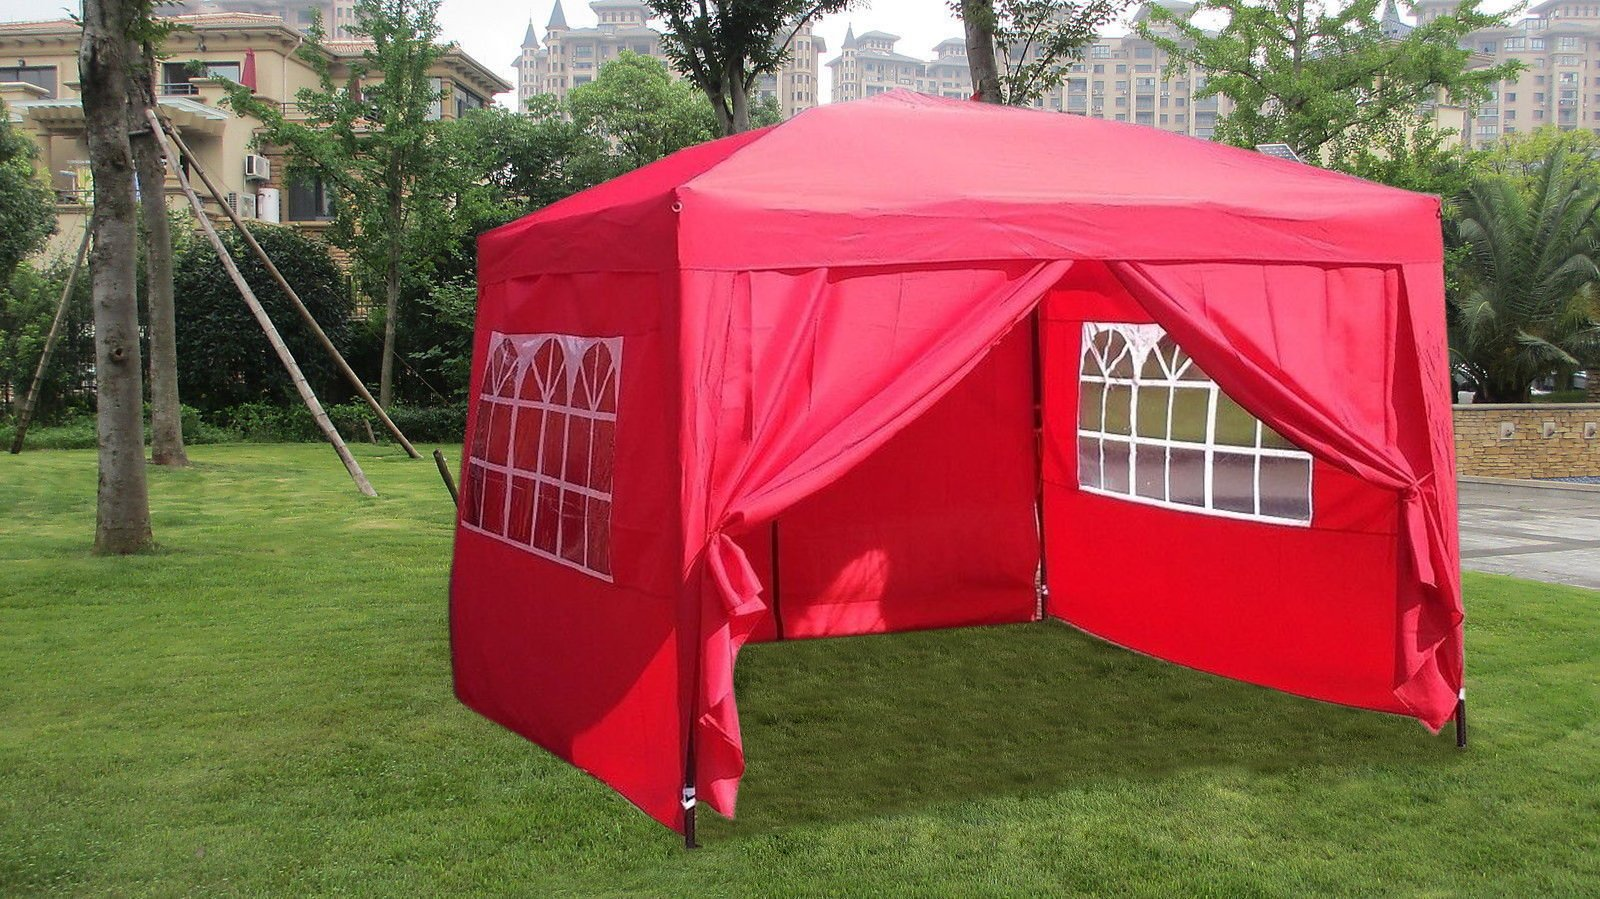 MCombo EZ Pop Up Wedding Party Tent Folding Gazebo Camping Canopy with Sides, 10' x 10', Red